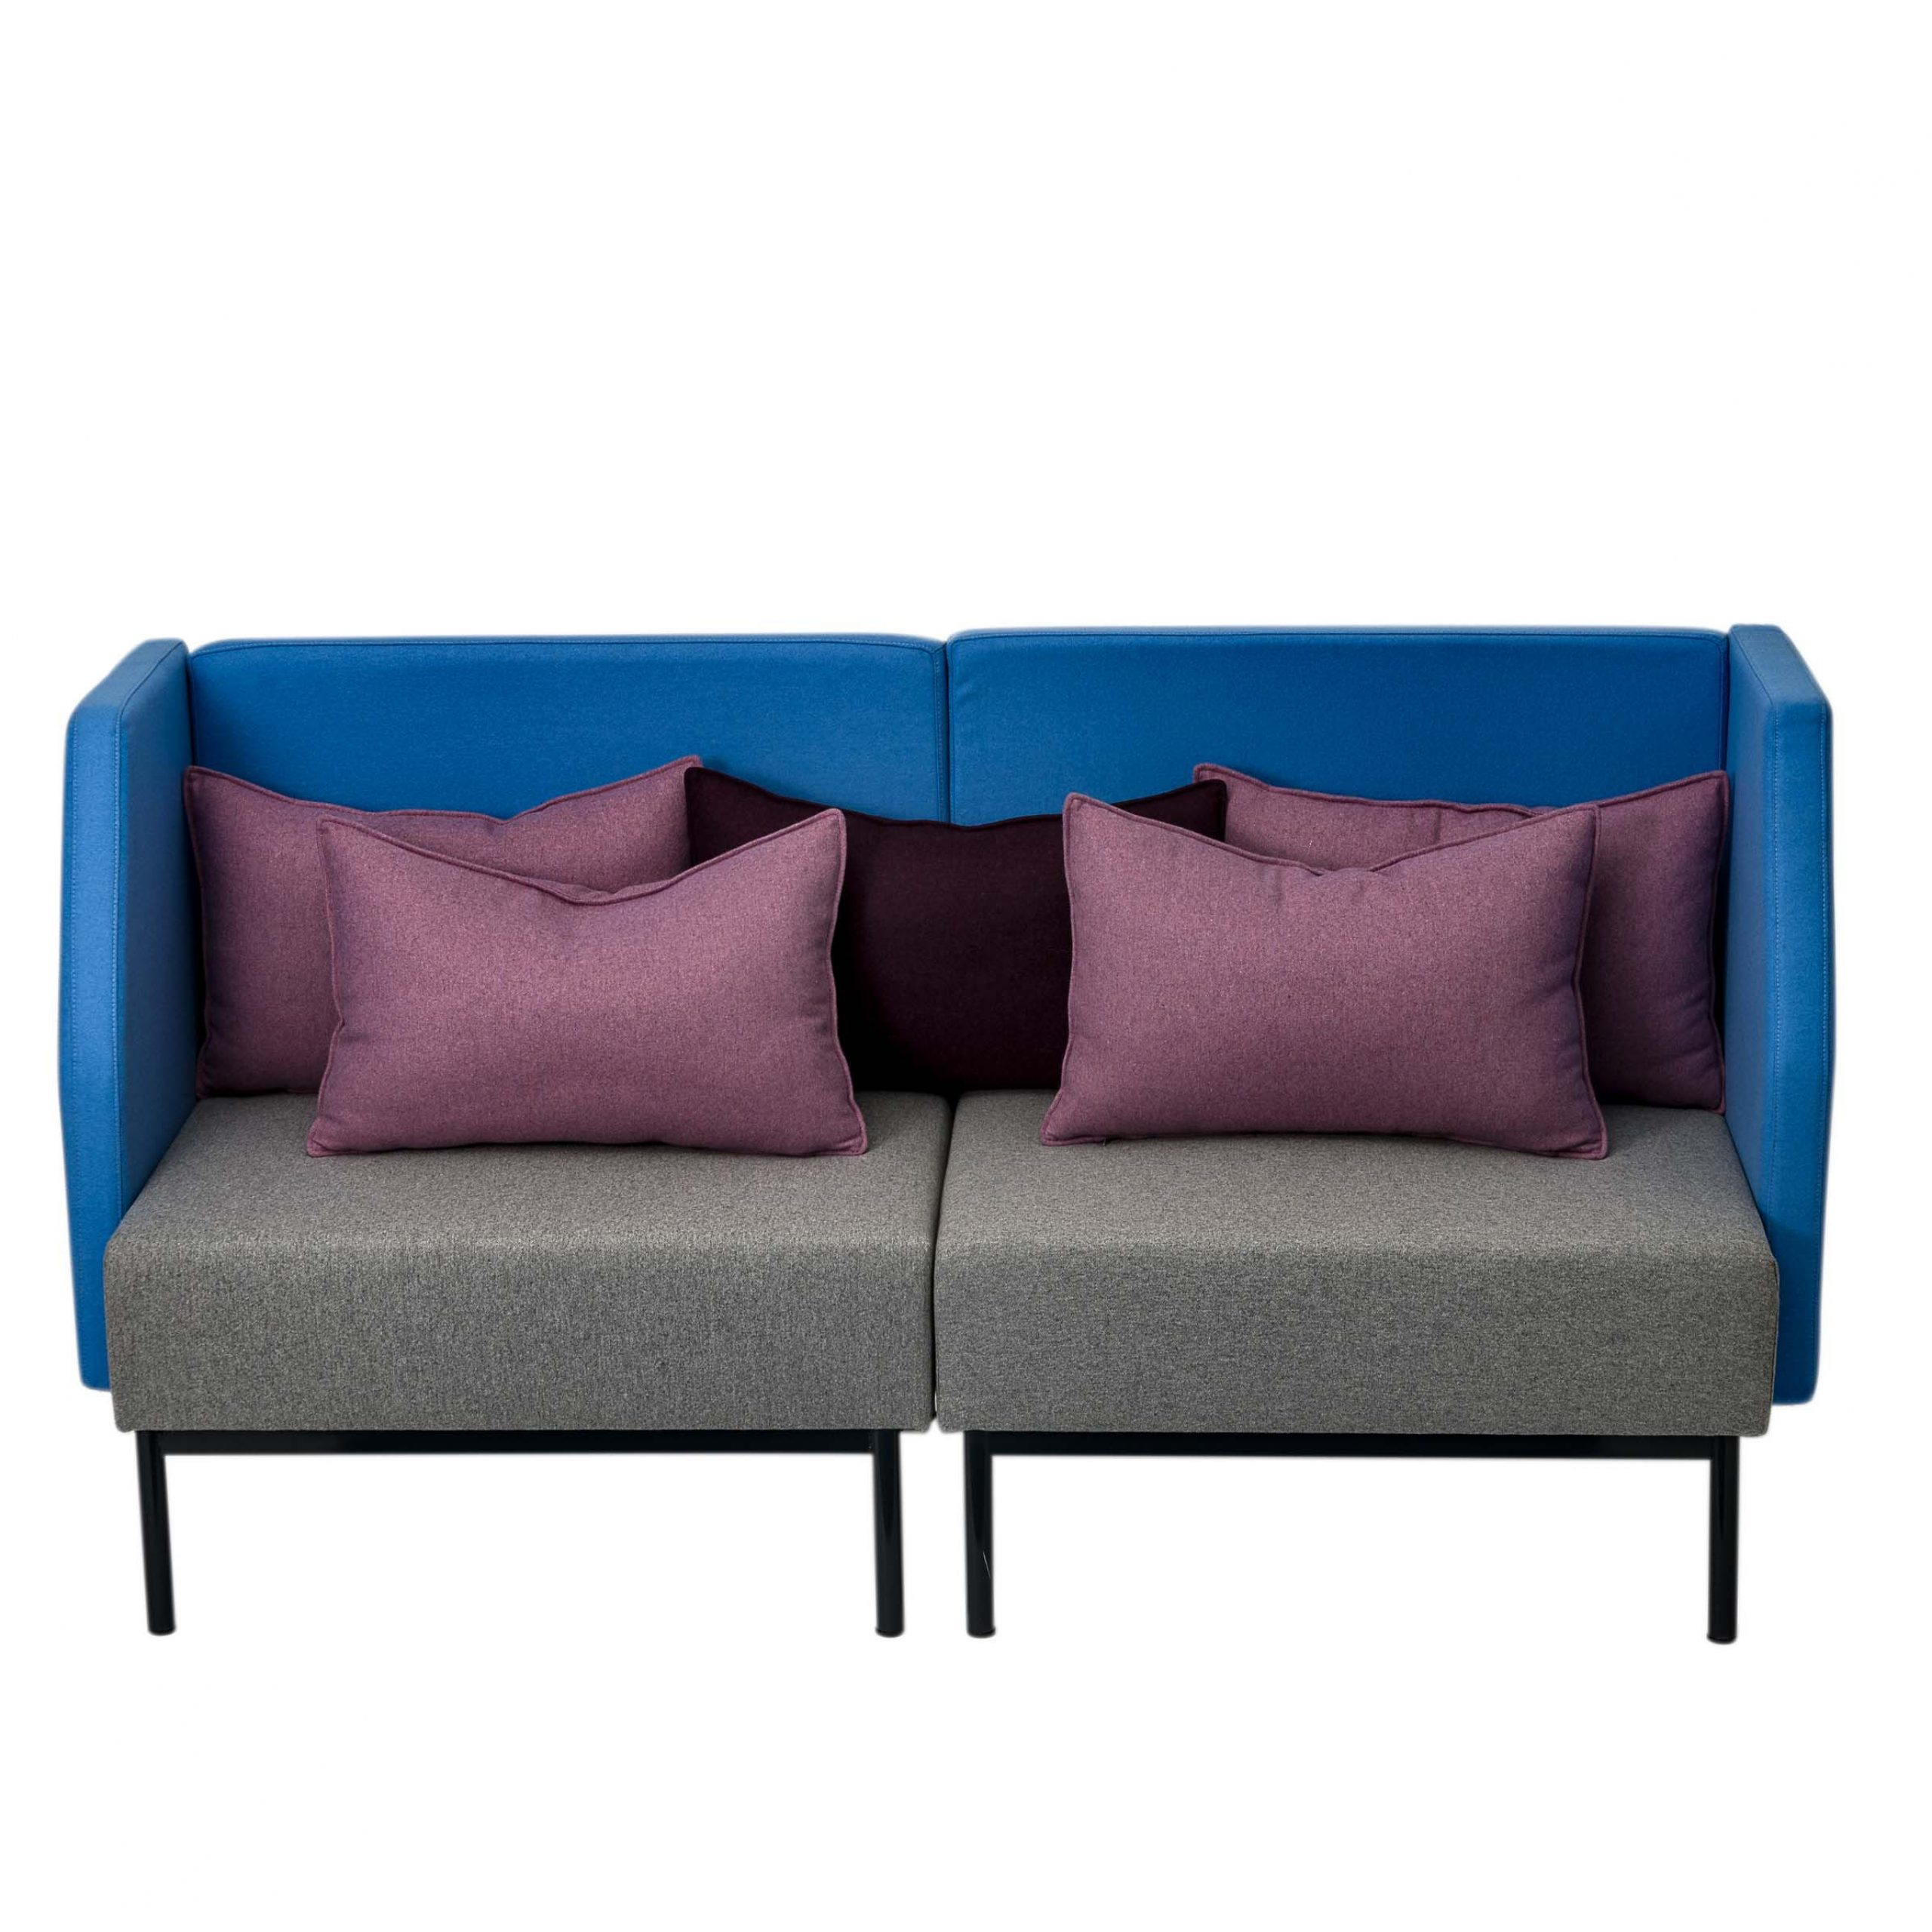 Salvato Sofas With Cushion Regarding Well Known Pin Di Real Piel Italia Su Soft Seating (View 19 of 25)